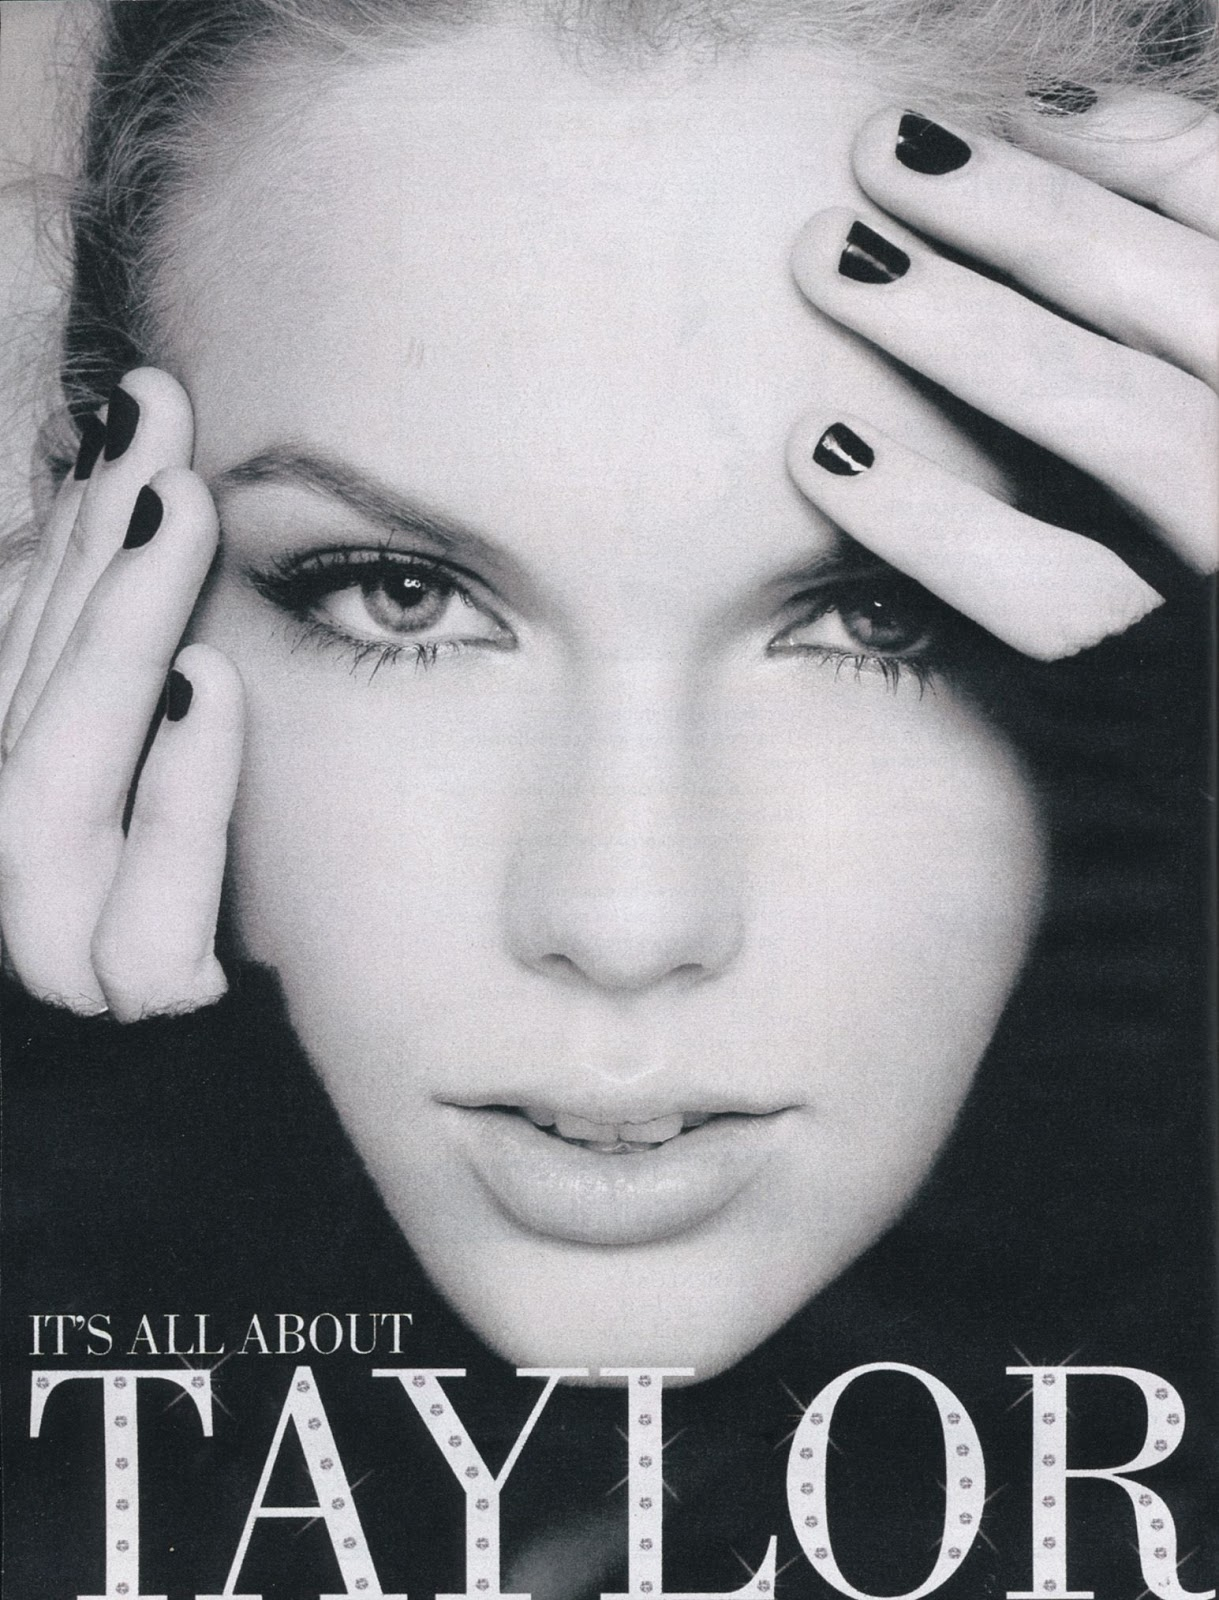 Taylor Swift Magazine Covers